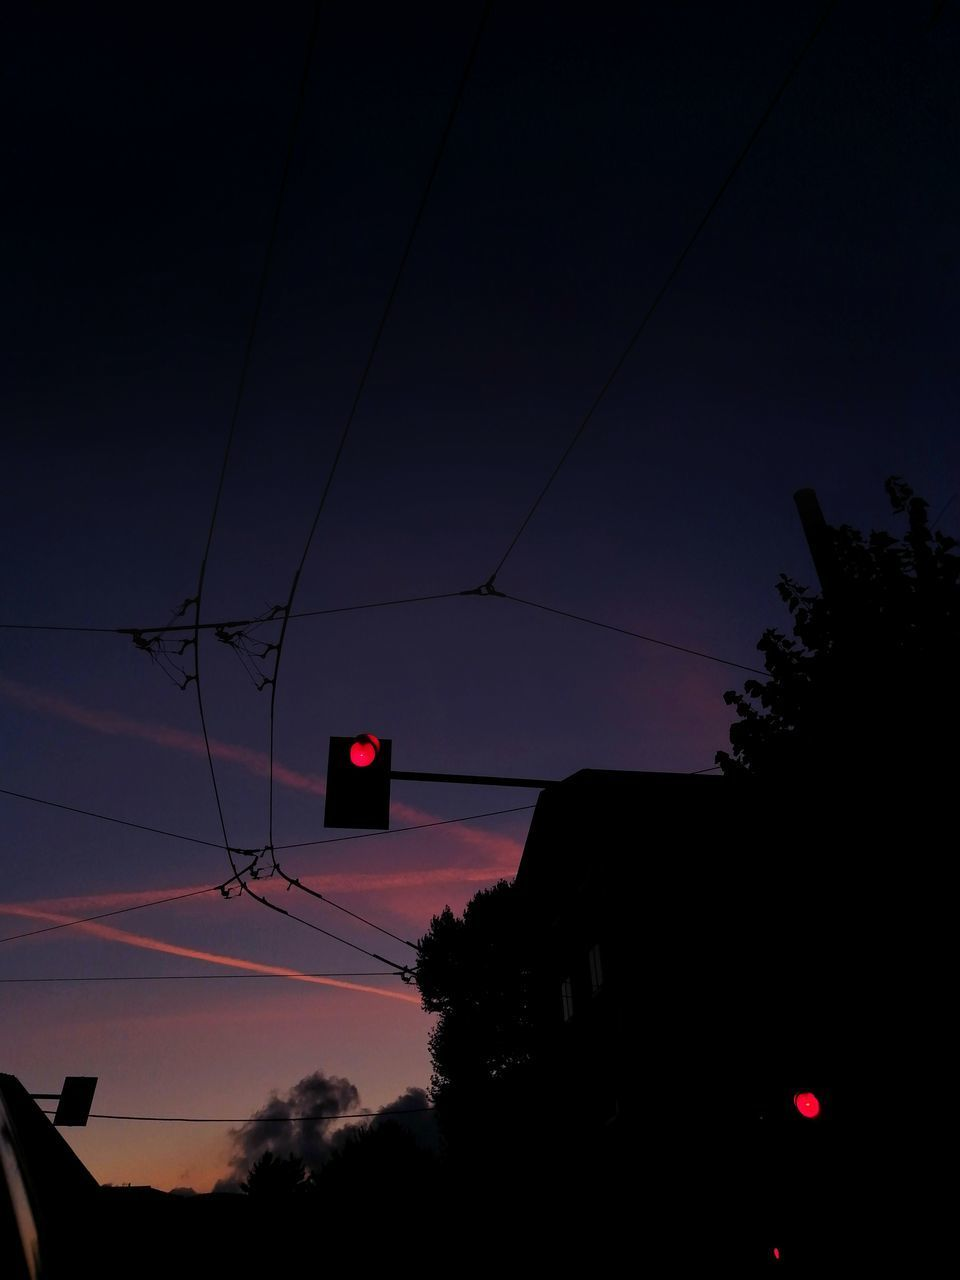 LOW ANGLE VIEW OF SILHOUETTE TELEPHONE POLE AGAINST SKY AT SUNSET